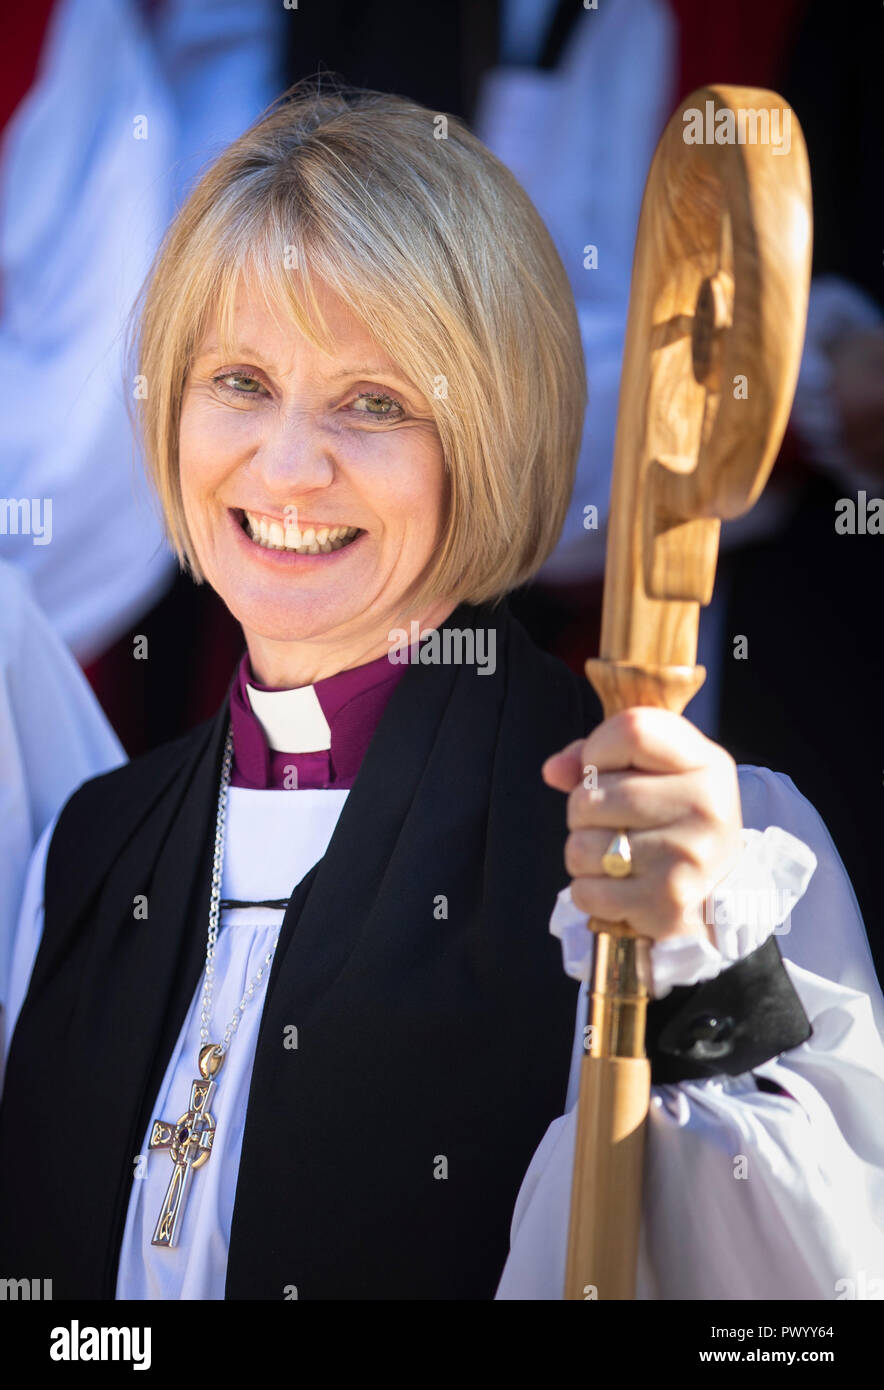 The Venerable Beverley Anne Mason following her consecration as the next Suffragan Bishop of Warrington, at the Diocese of Liverpool at York Minster. - Stock Image